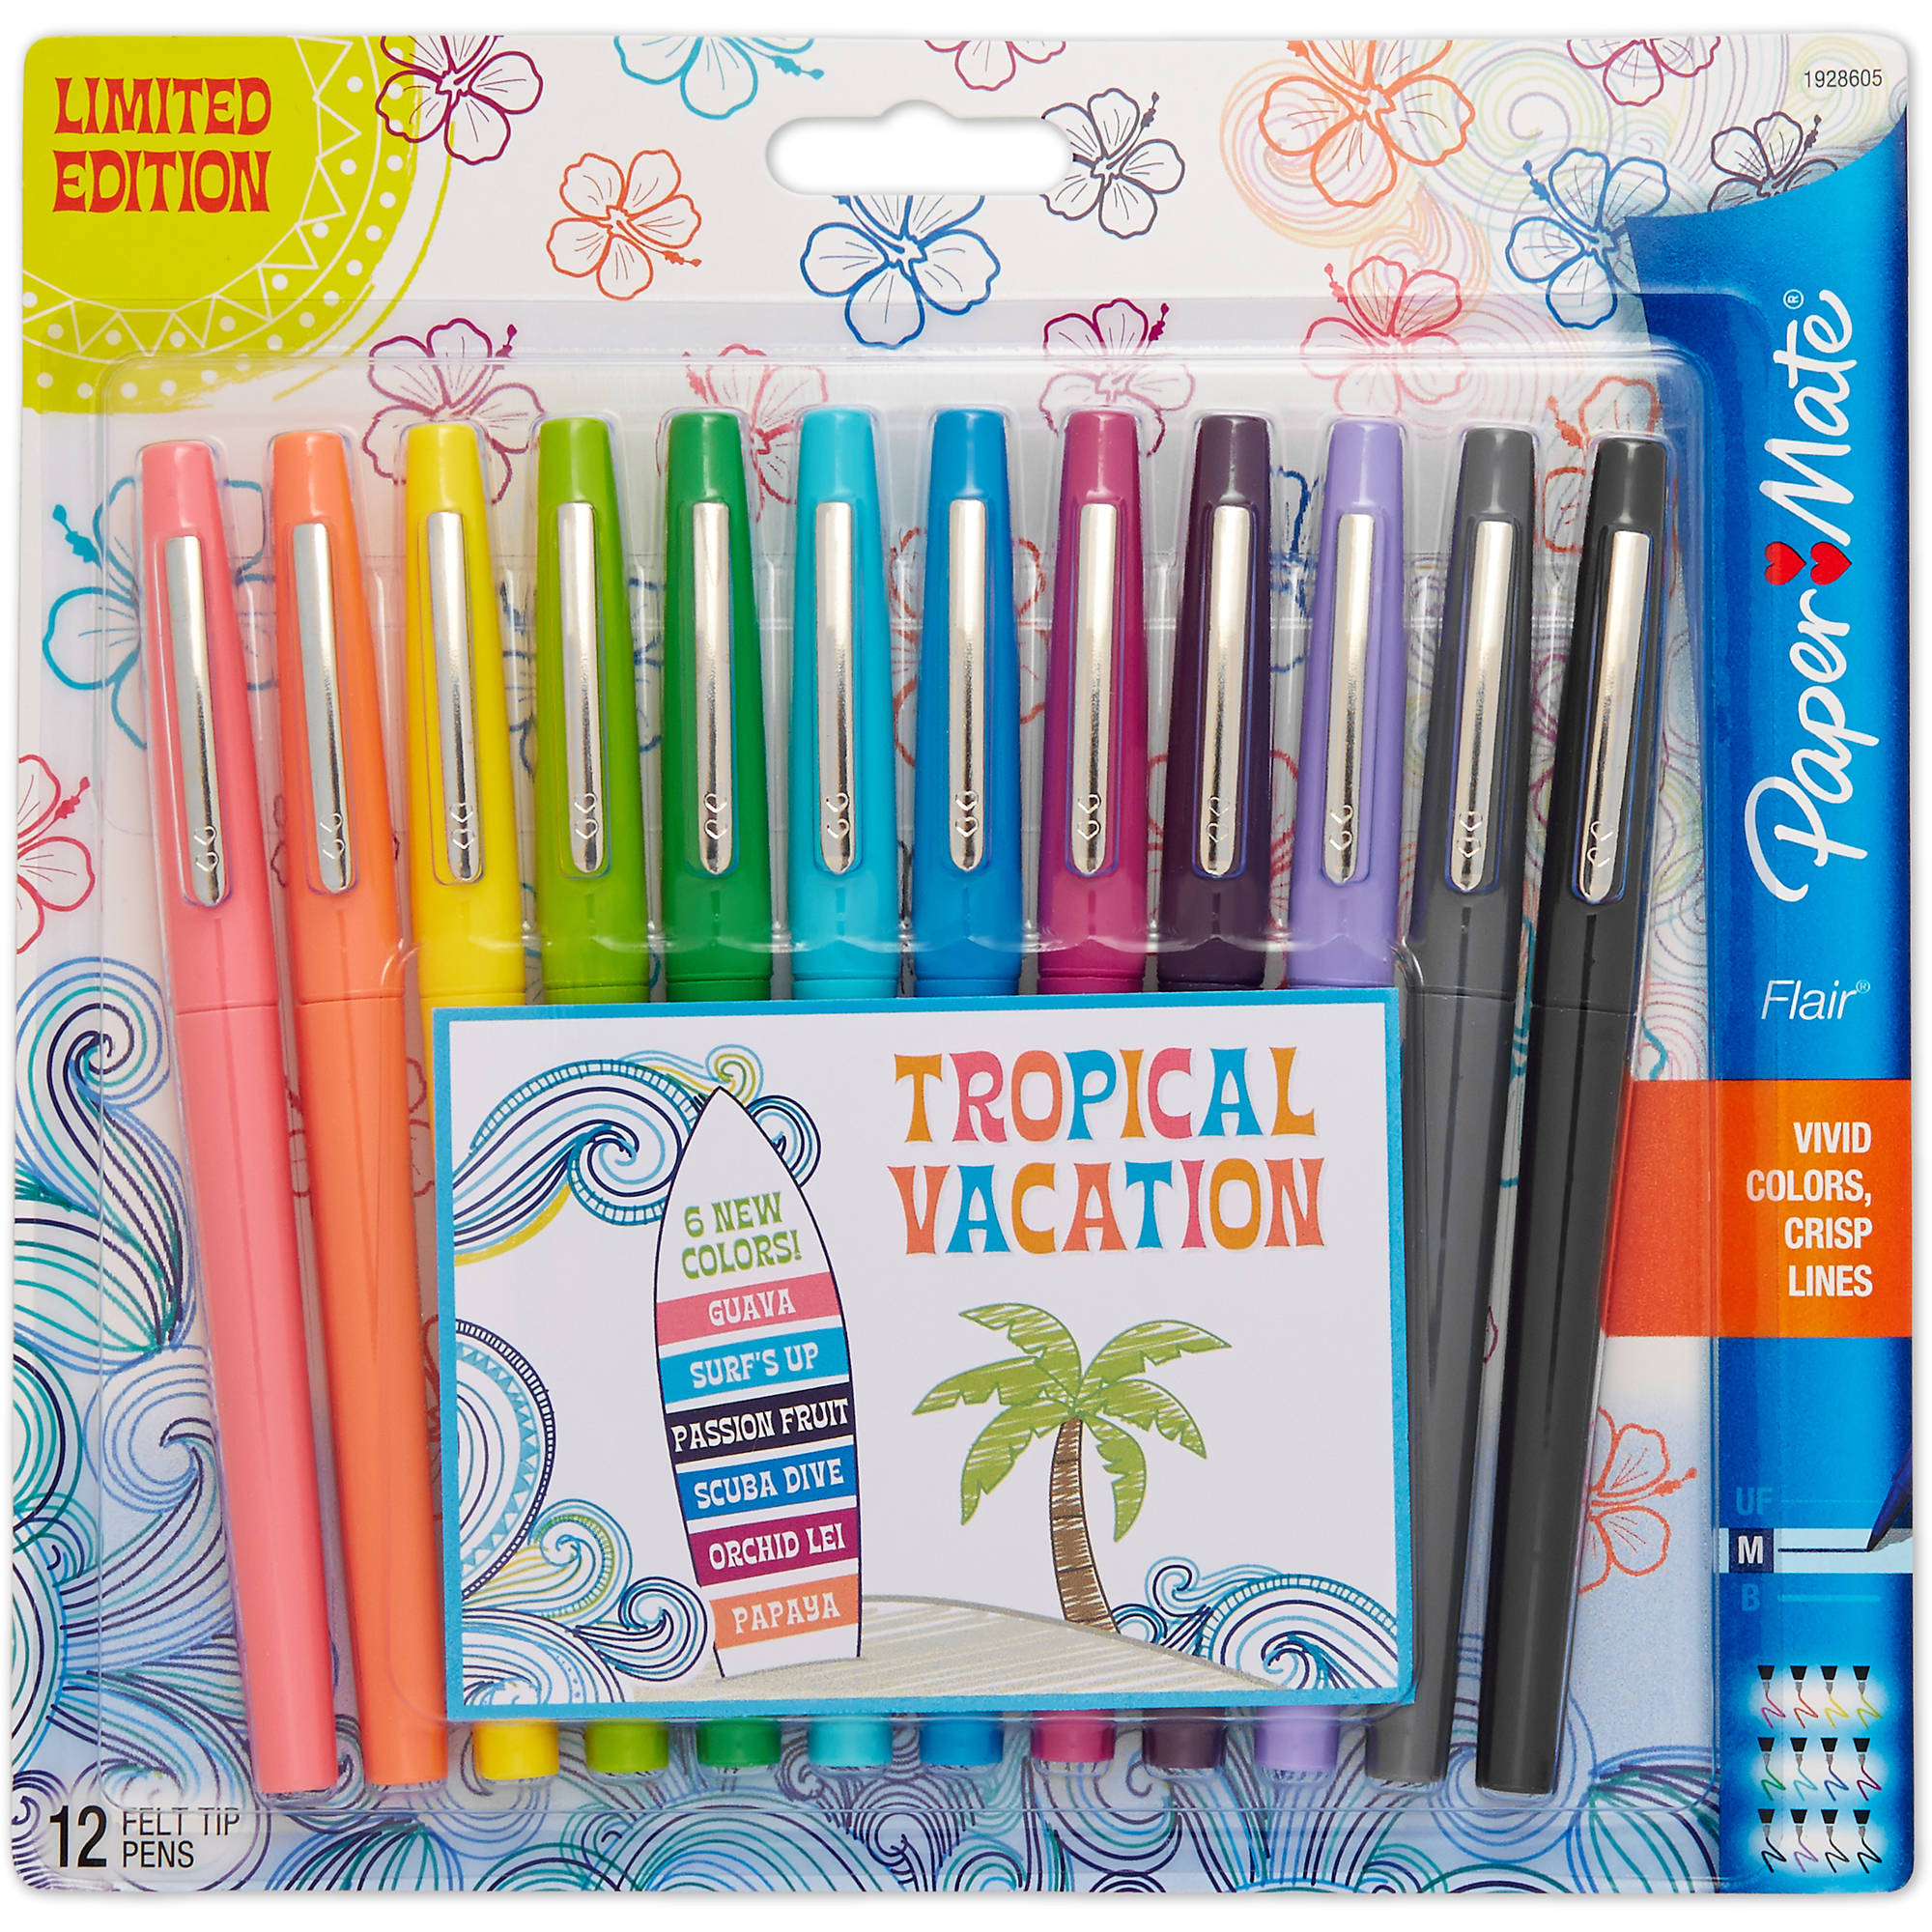 Paper Mate Flair Felt Tip Pens, Medium Point, Limited Edition Tropical & Assorted Colors, 12 Pack